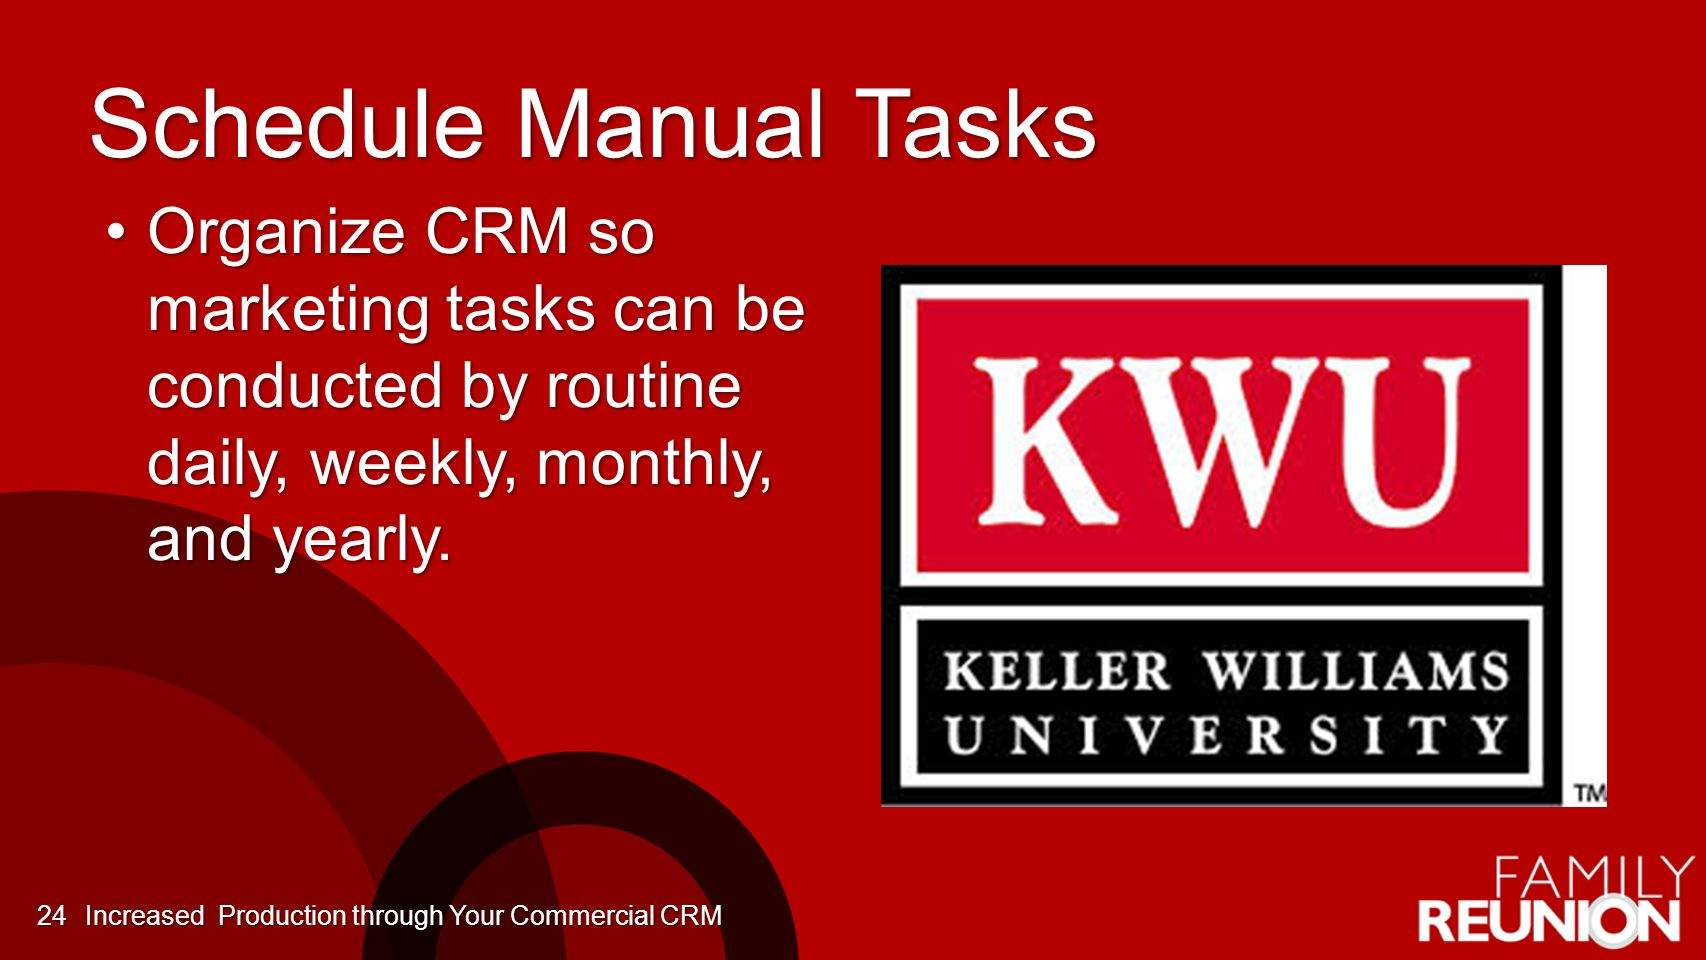 Schedule Manual Tasks Organize CRM so marketing tasks can be conducted by routine daily, weekly, monthly, and yearly.Organize CRM so marketing tasks can be conducted by routine daily, weekly, monthly, and yearly.